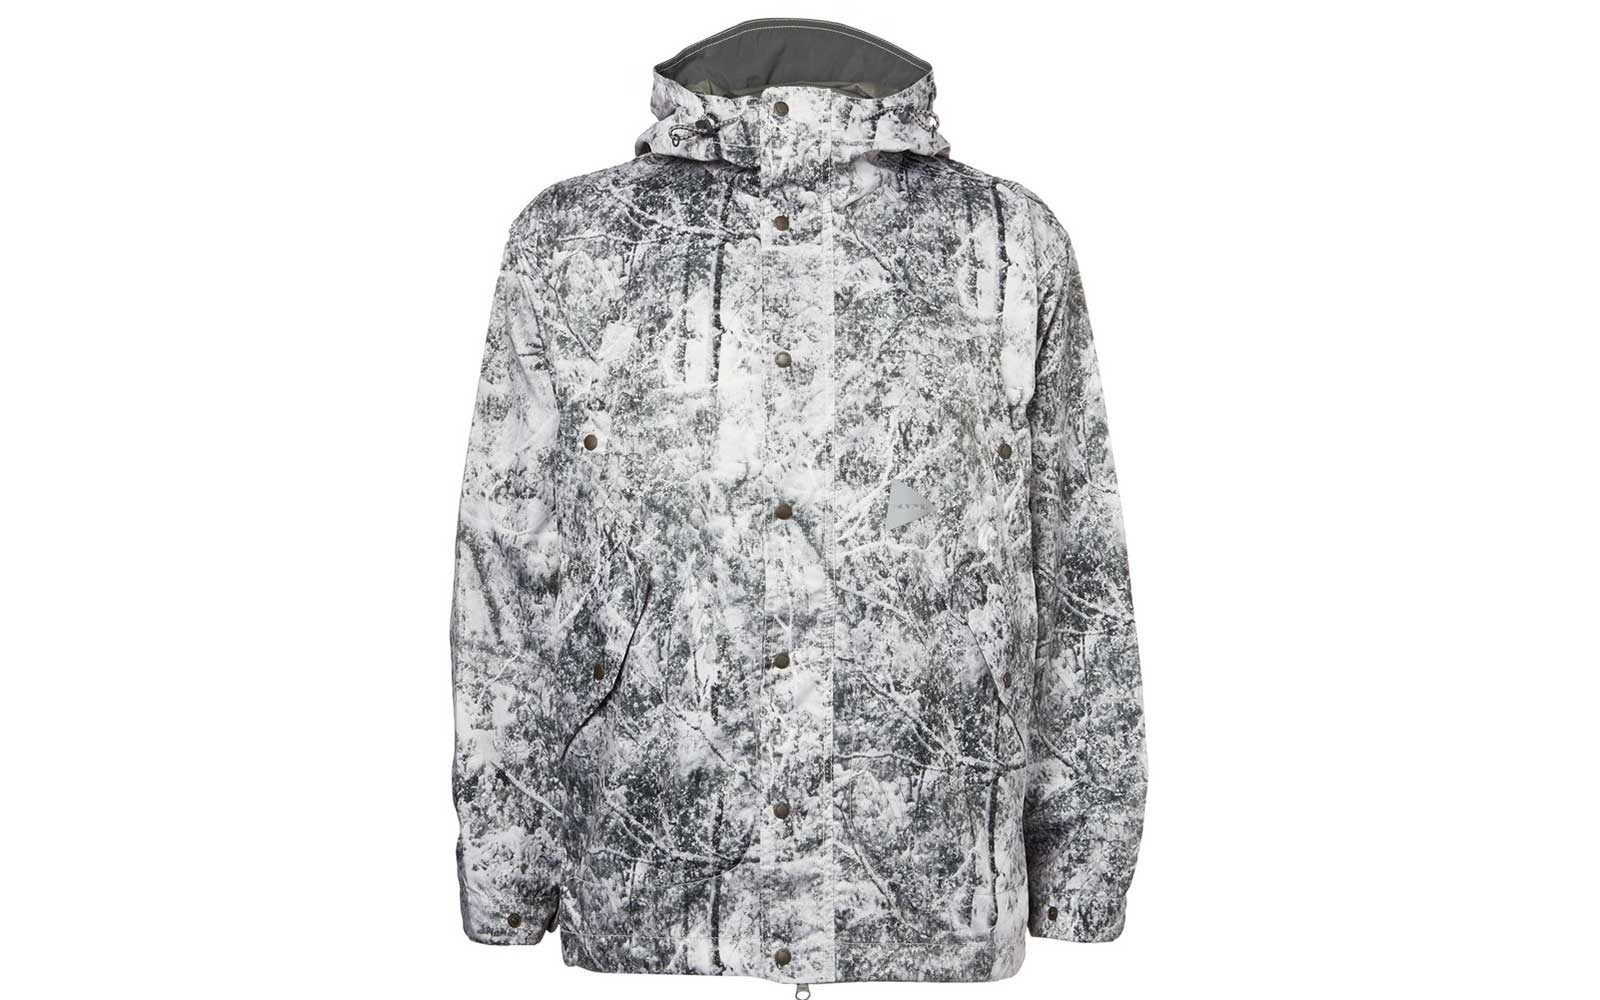 Forest print ski jacket from AND WANDER